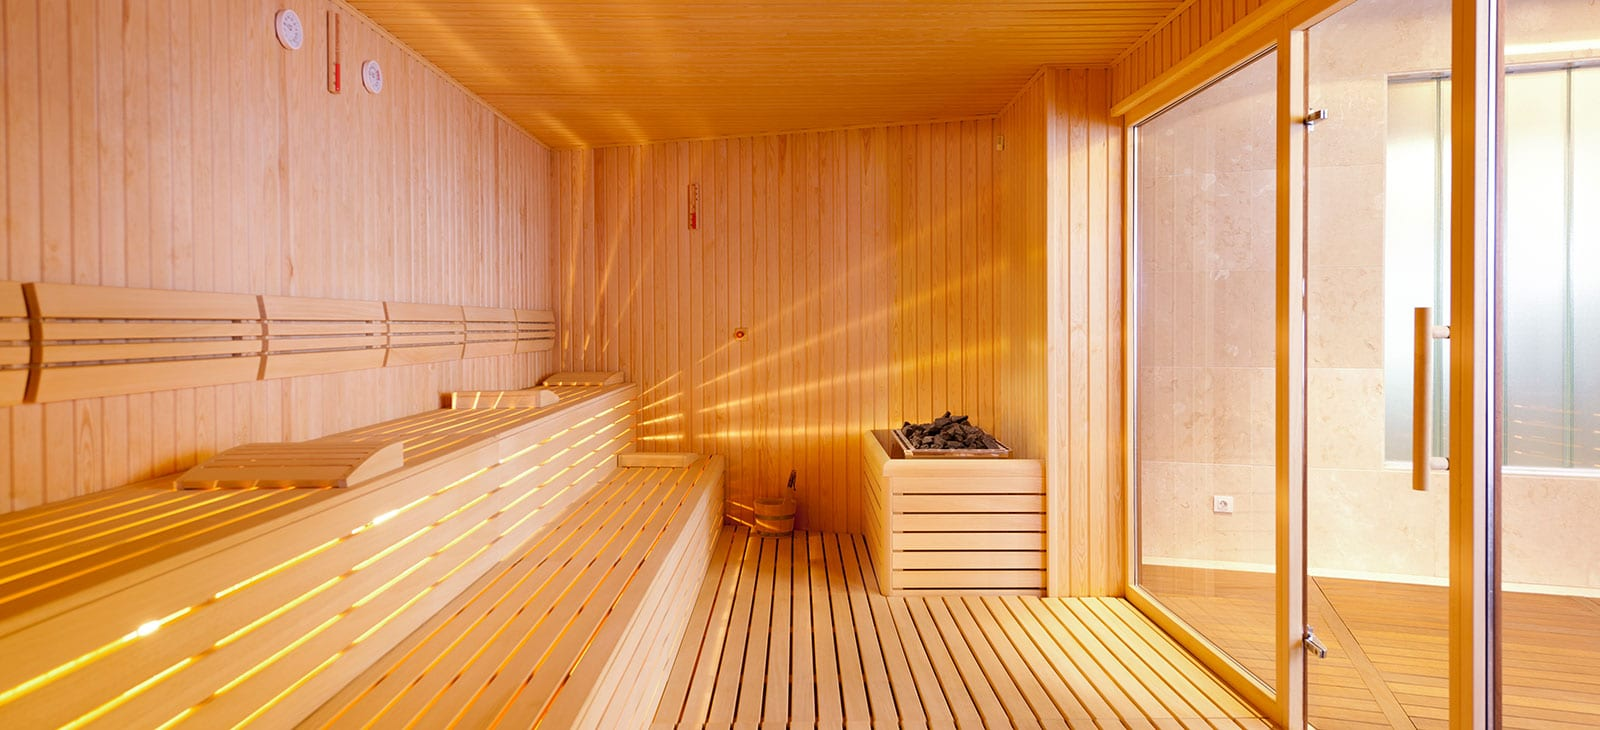 Finnische Sauna in den Lofts